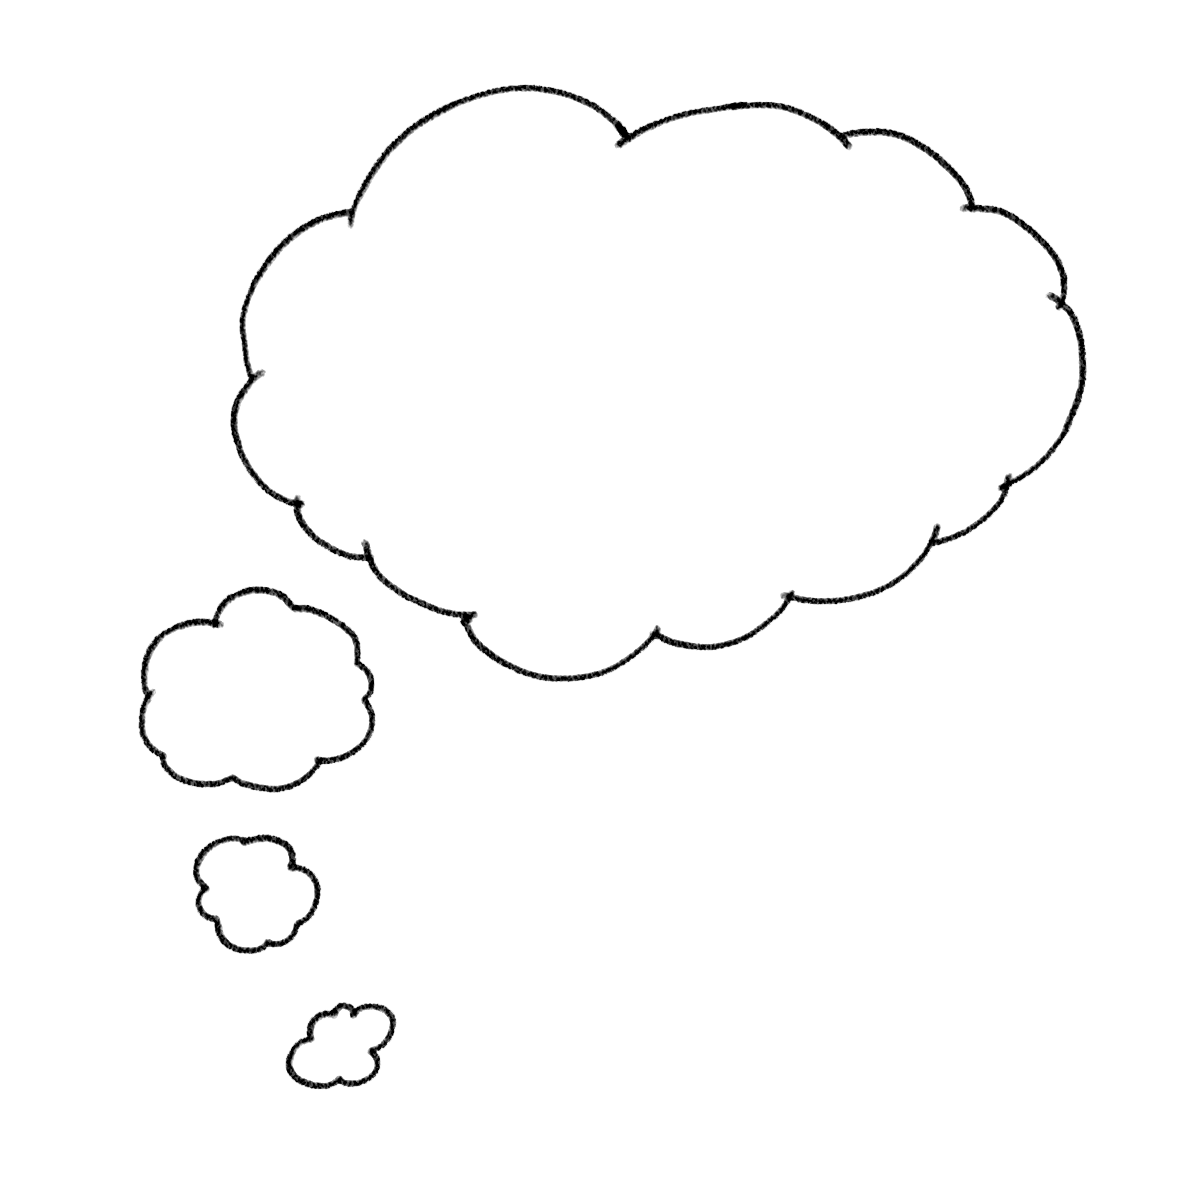 White thought bubble png. Pictures transparentpng image information